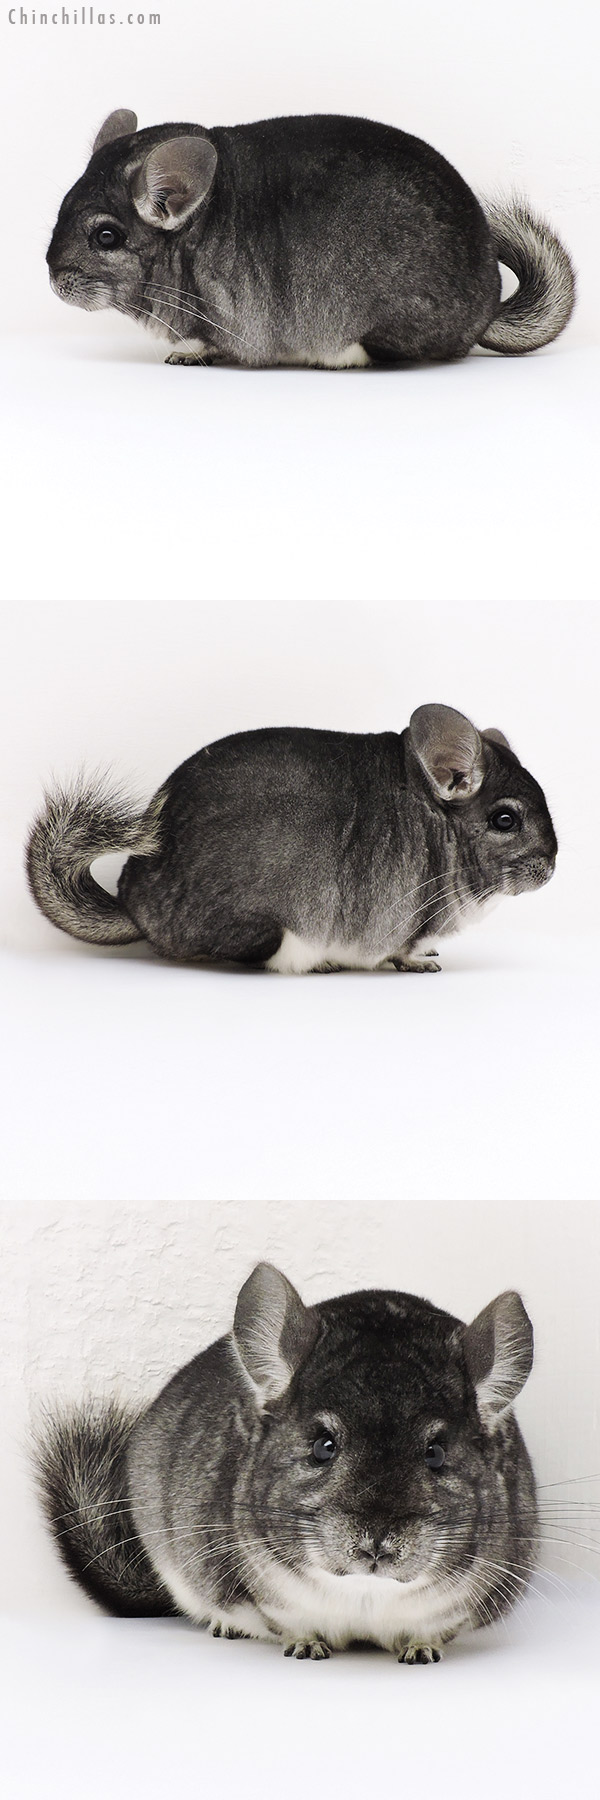 17197 Large Blocky Premium Production Quality Standard Female Chinchilla